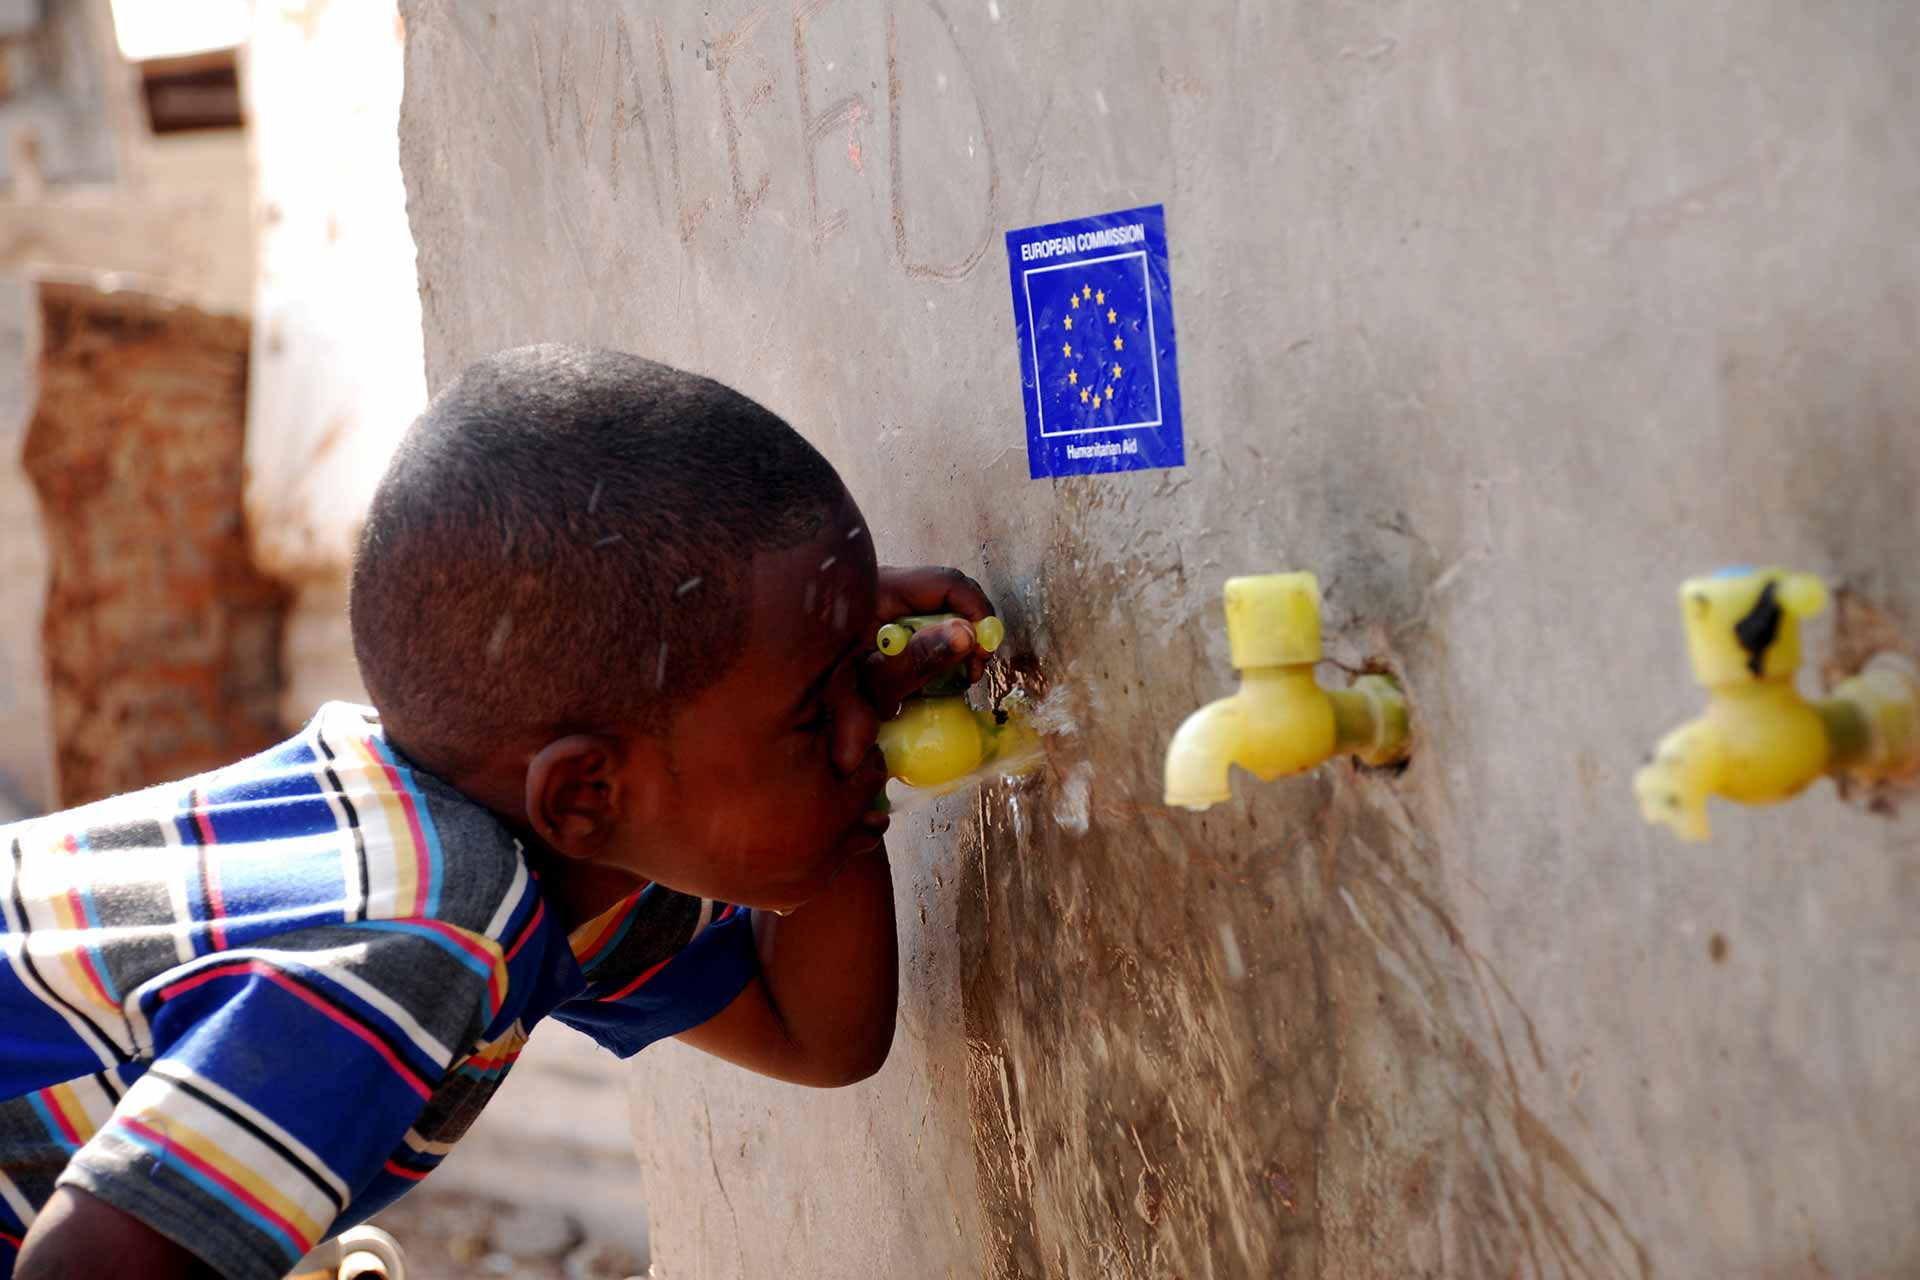 A young Somali refugee drinks water from a public tap provided by EC Humanitarian Aid